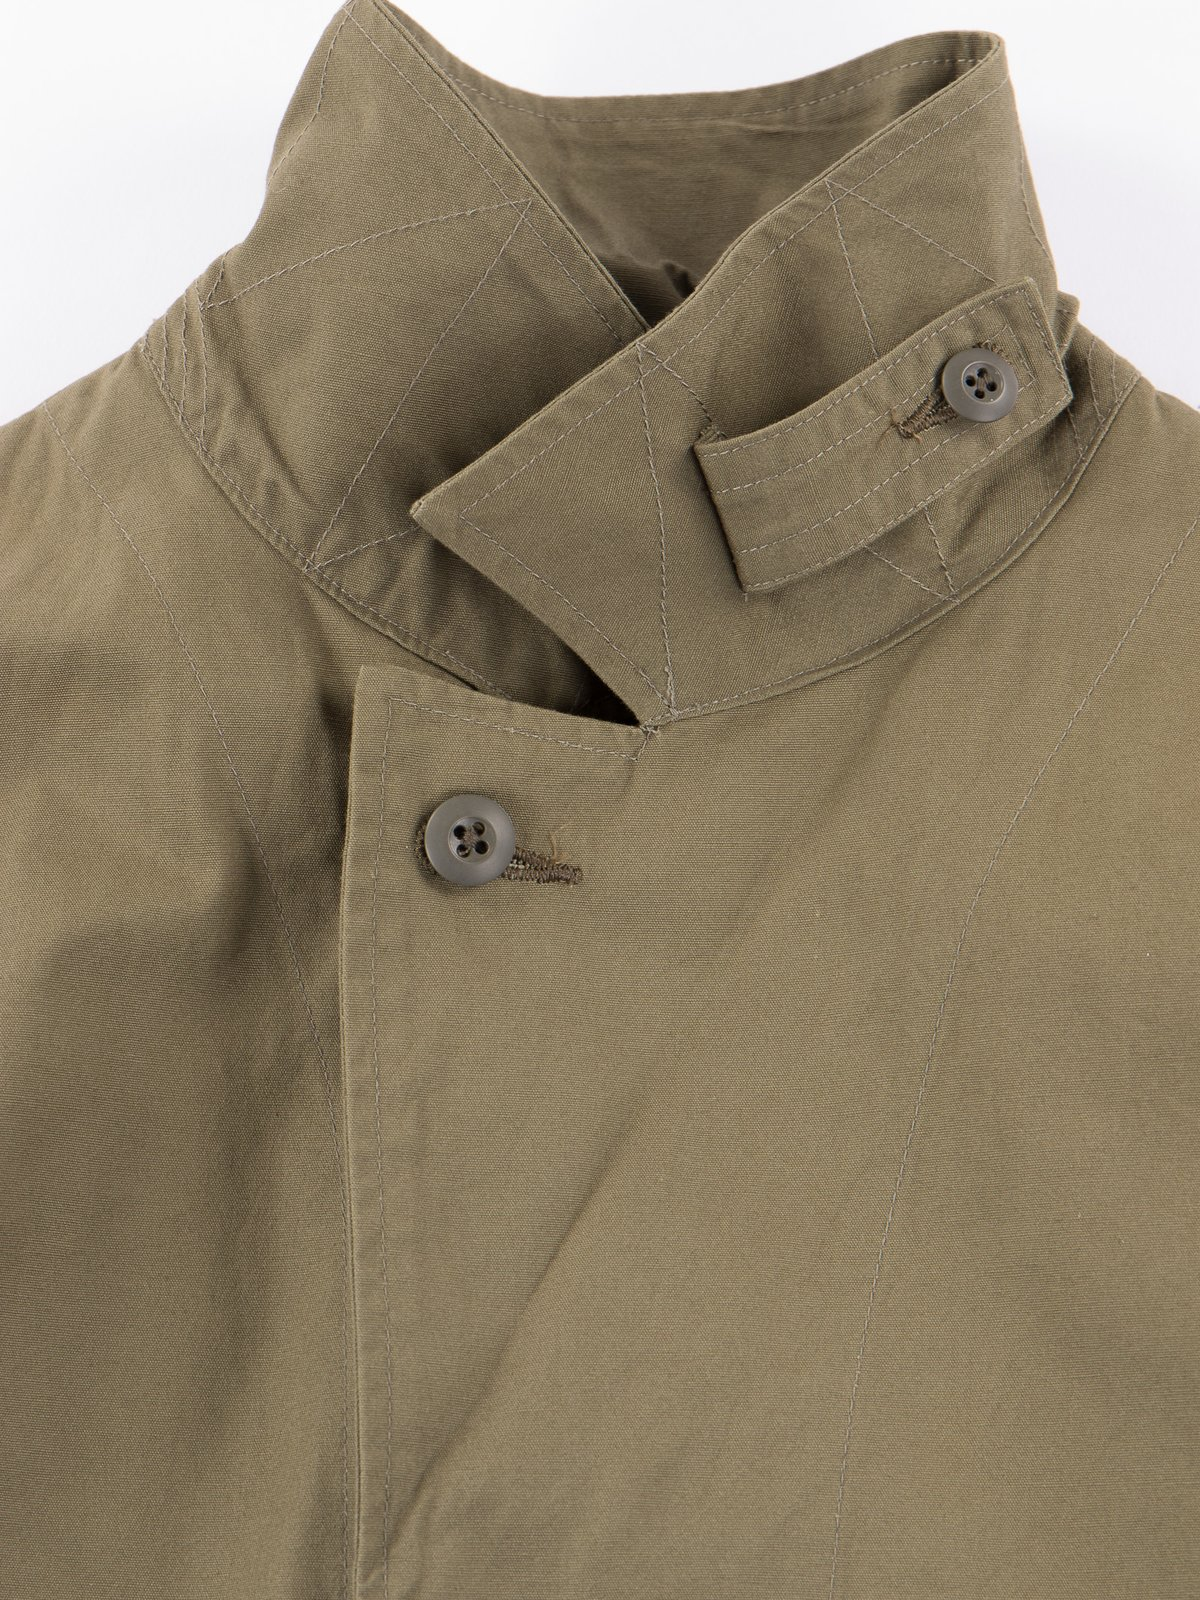 Olive Utility Coverall Jacket - Image 4